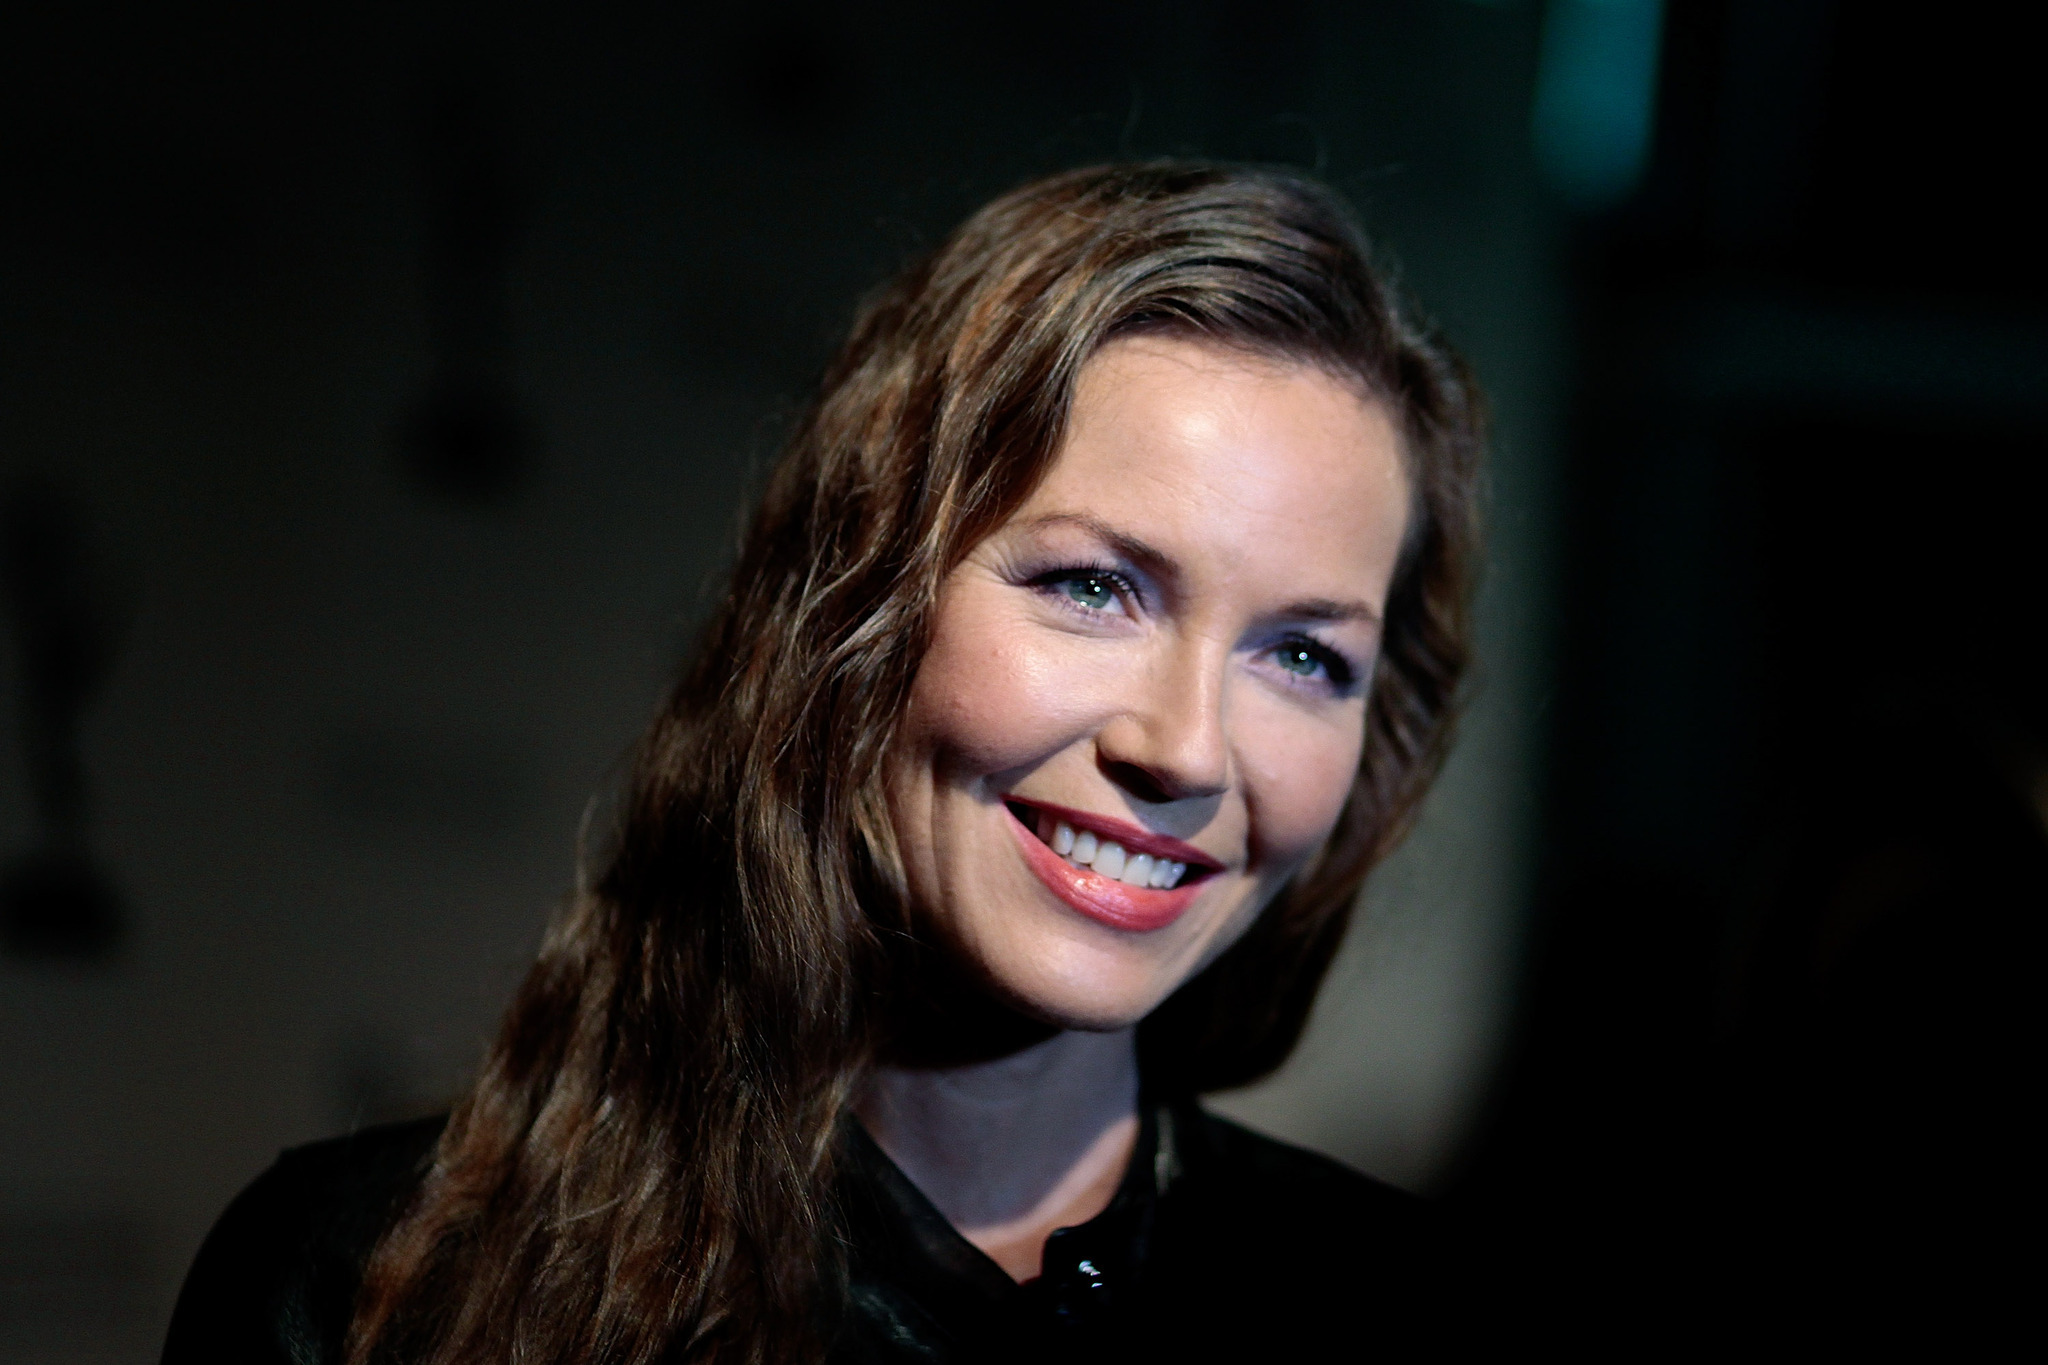 Connie Nielsen Wallpapers Hd